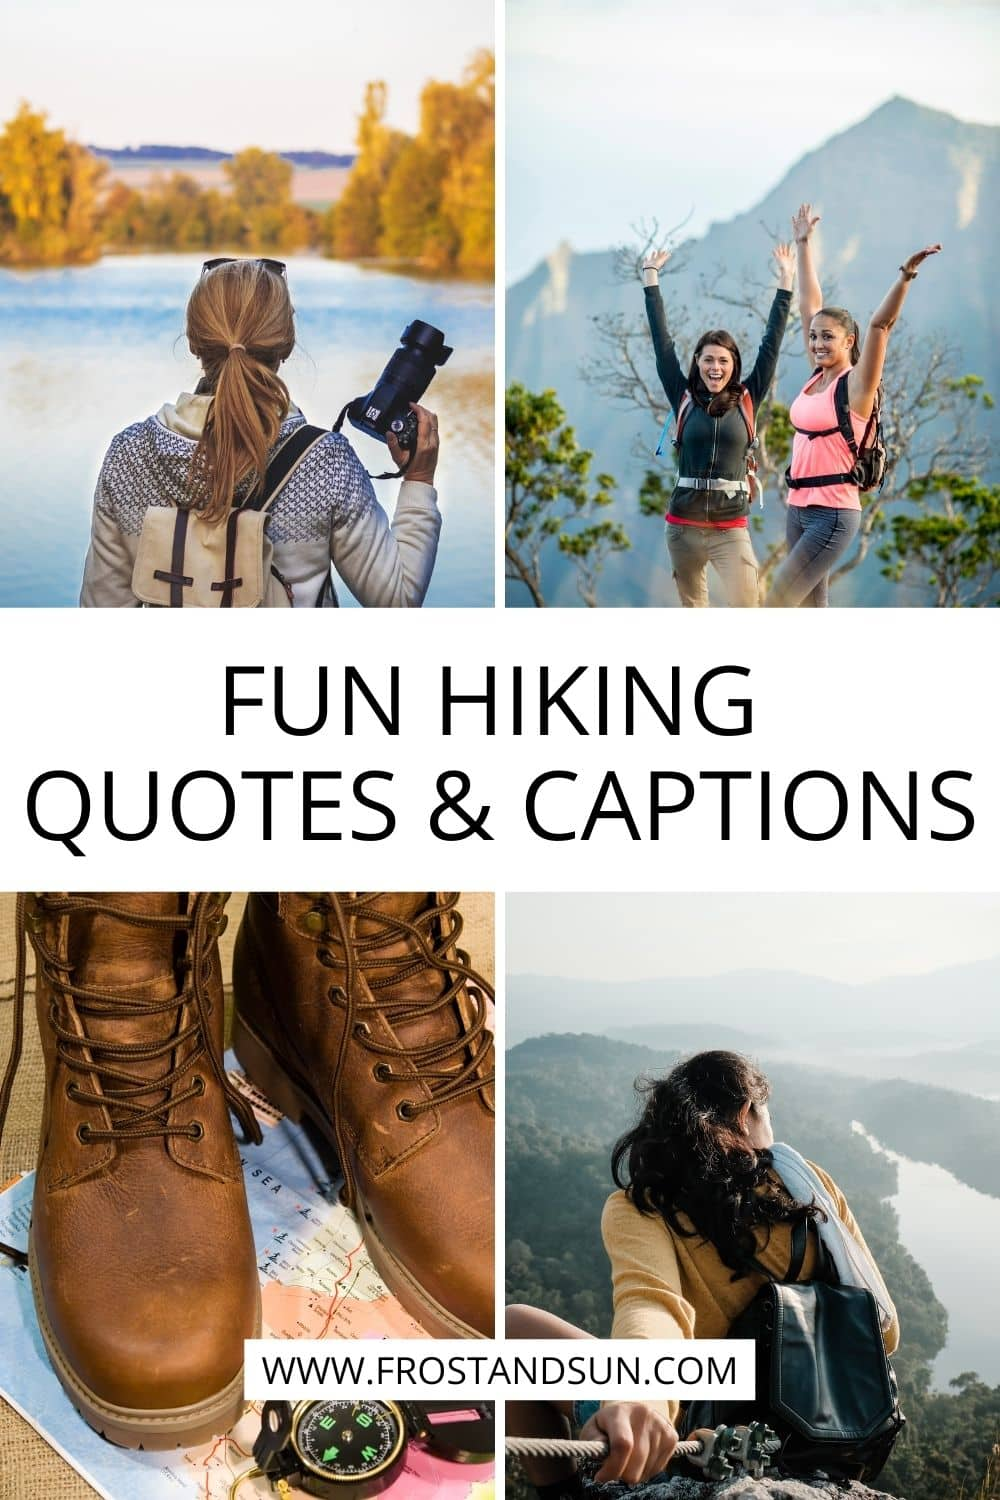 The Best Hiking Quotes & Captions for Instagram